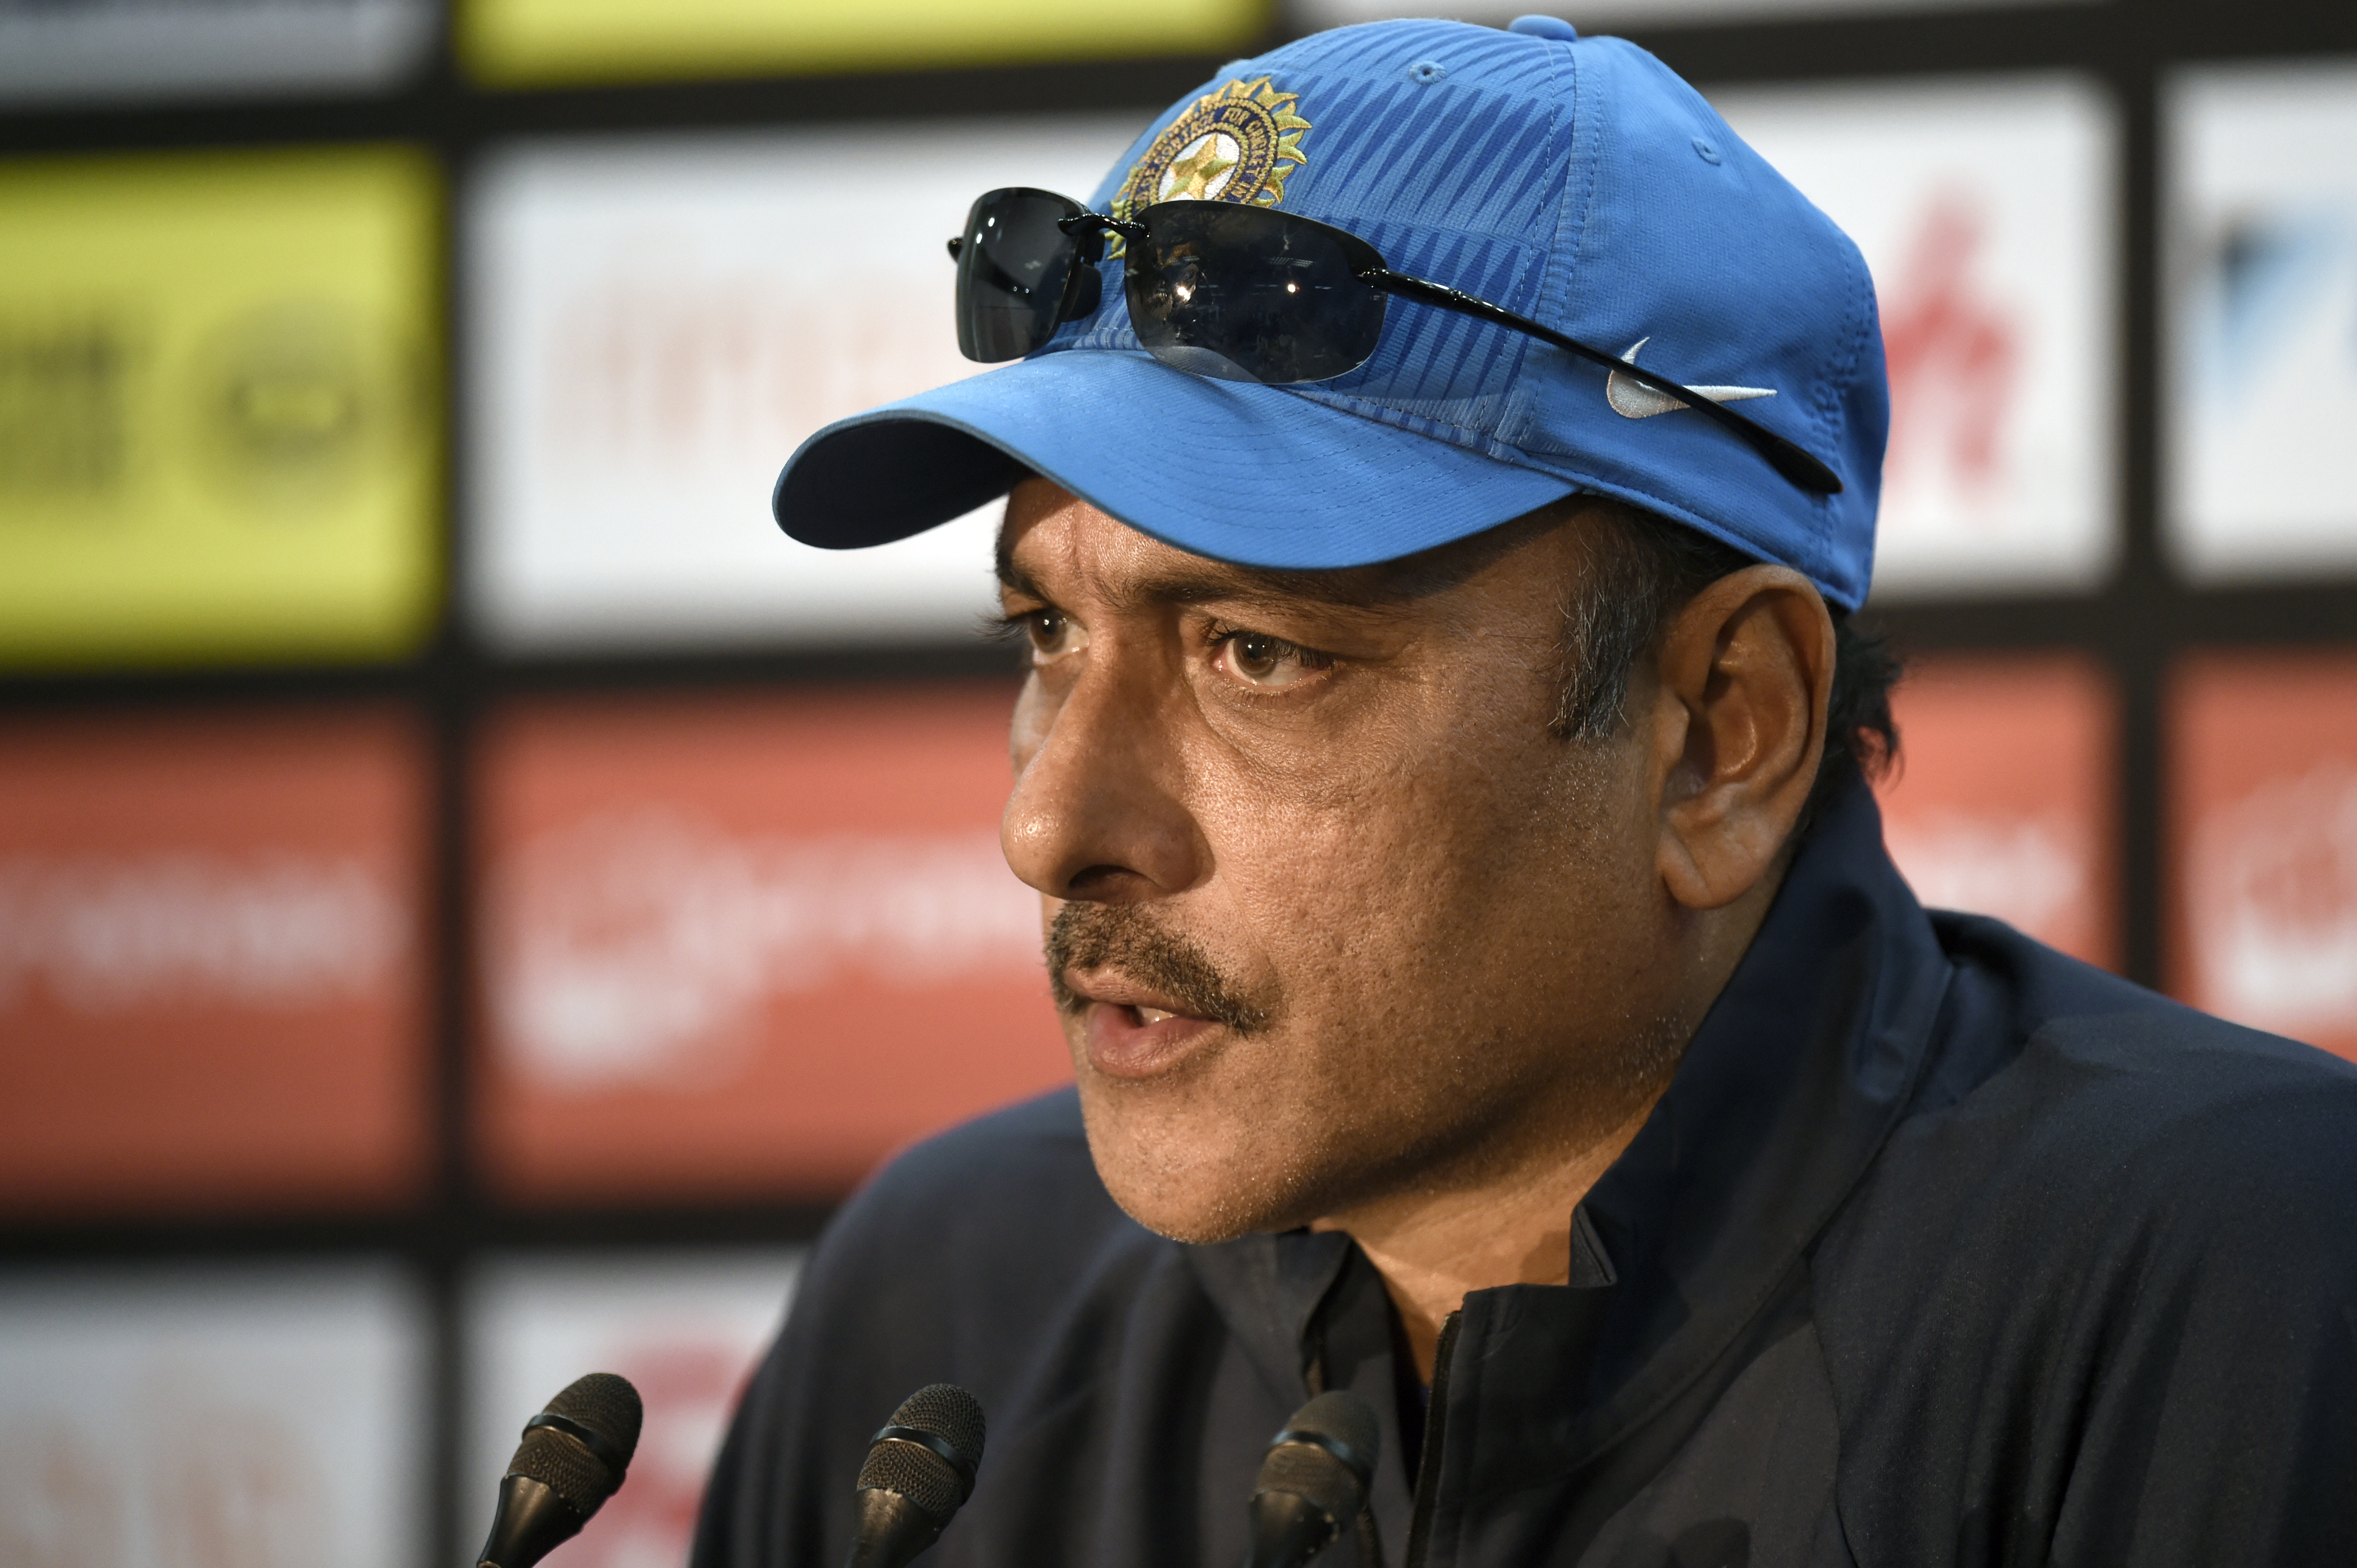 Ravi Shastri was replaced by current India coach Anil Kumble. Photo: AFP